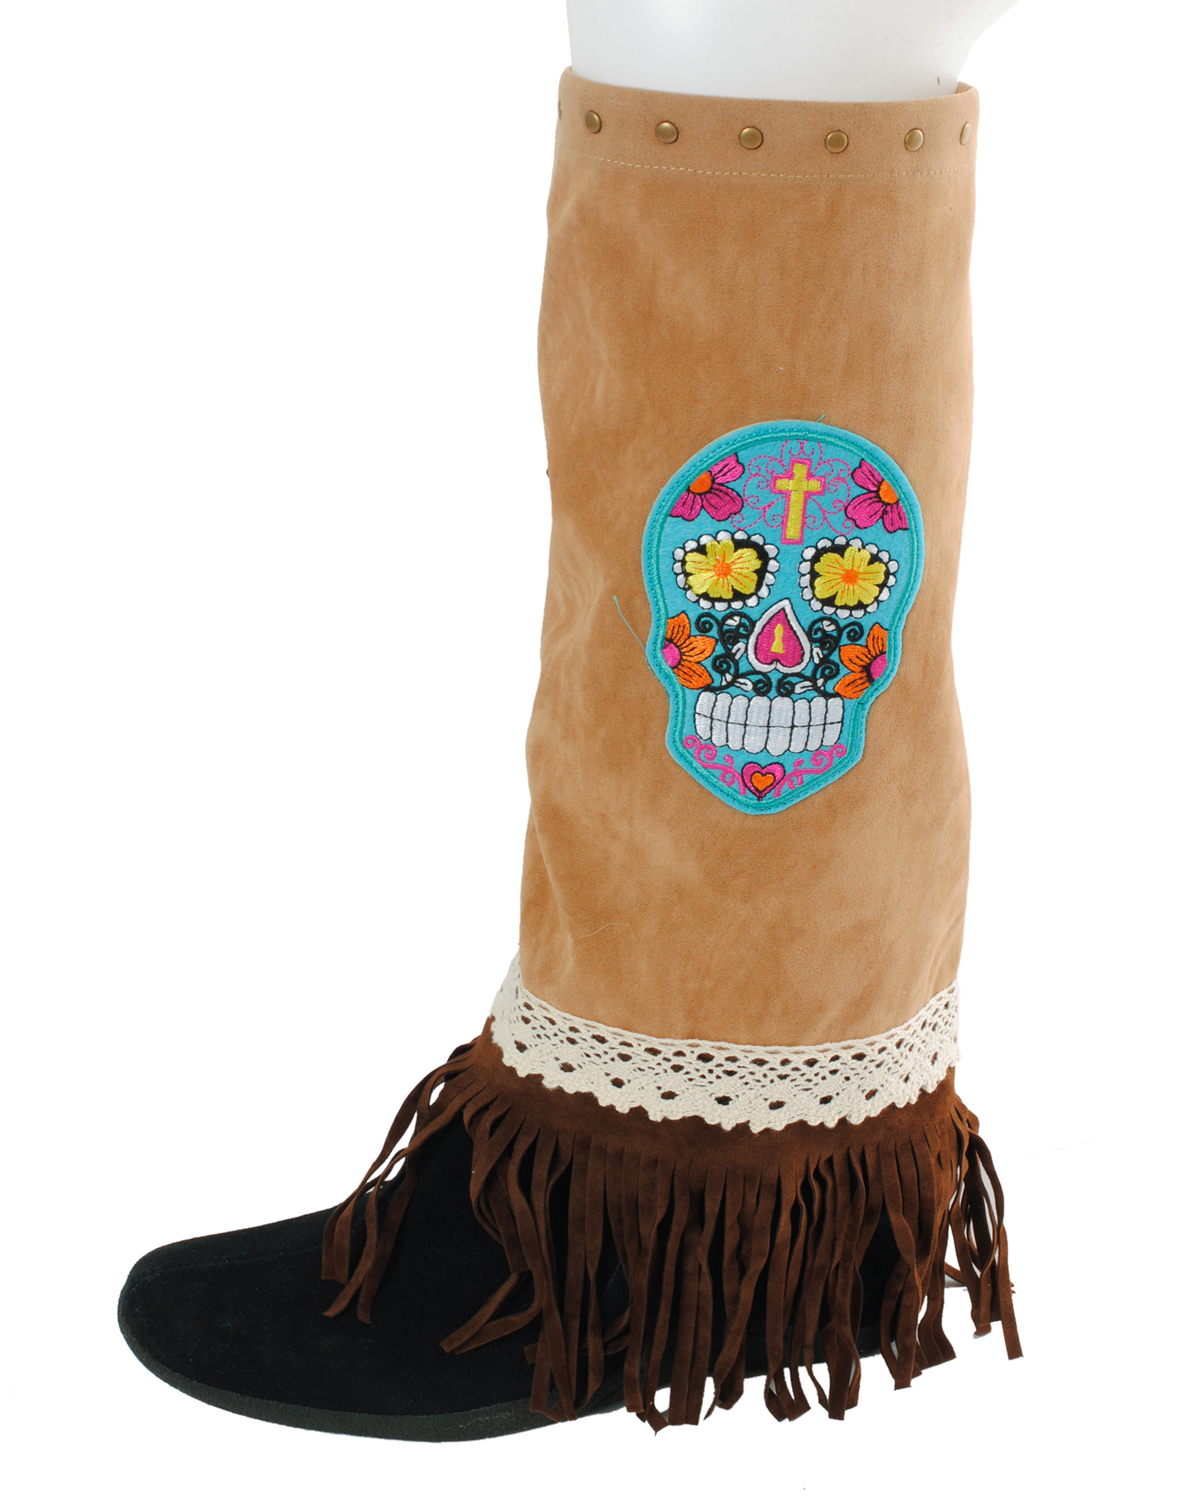 OL0064(GBBR)-wholesale-boot-rugs-western-fringe-sugar-skull-patch-floral-cross-embroidered-faux-suede-lace-studs(0).jpg